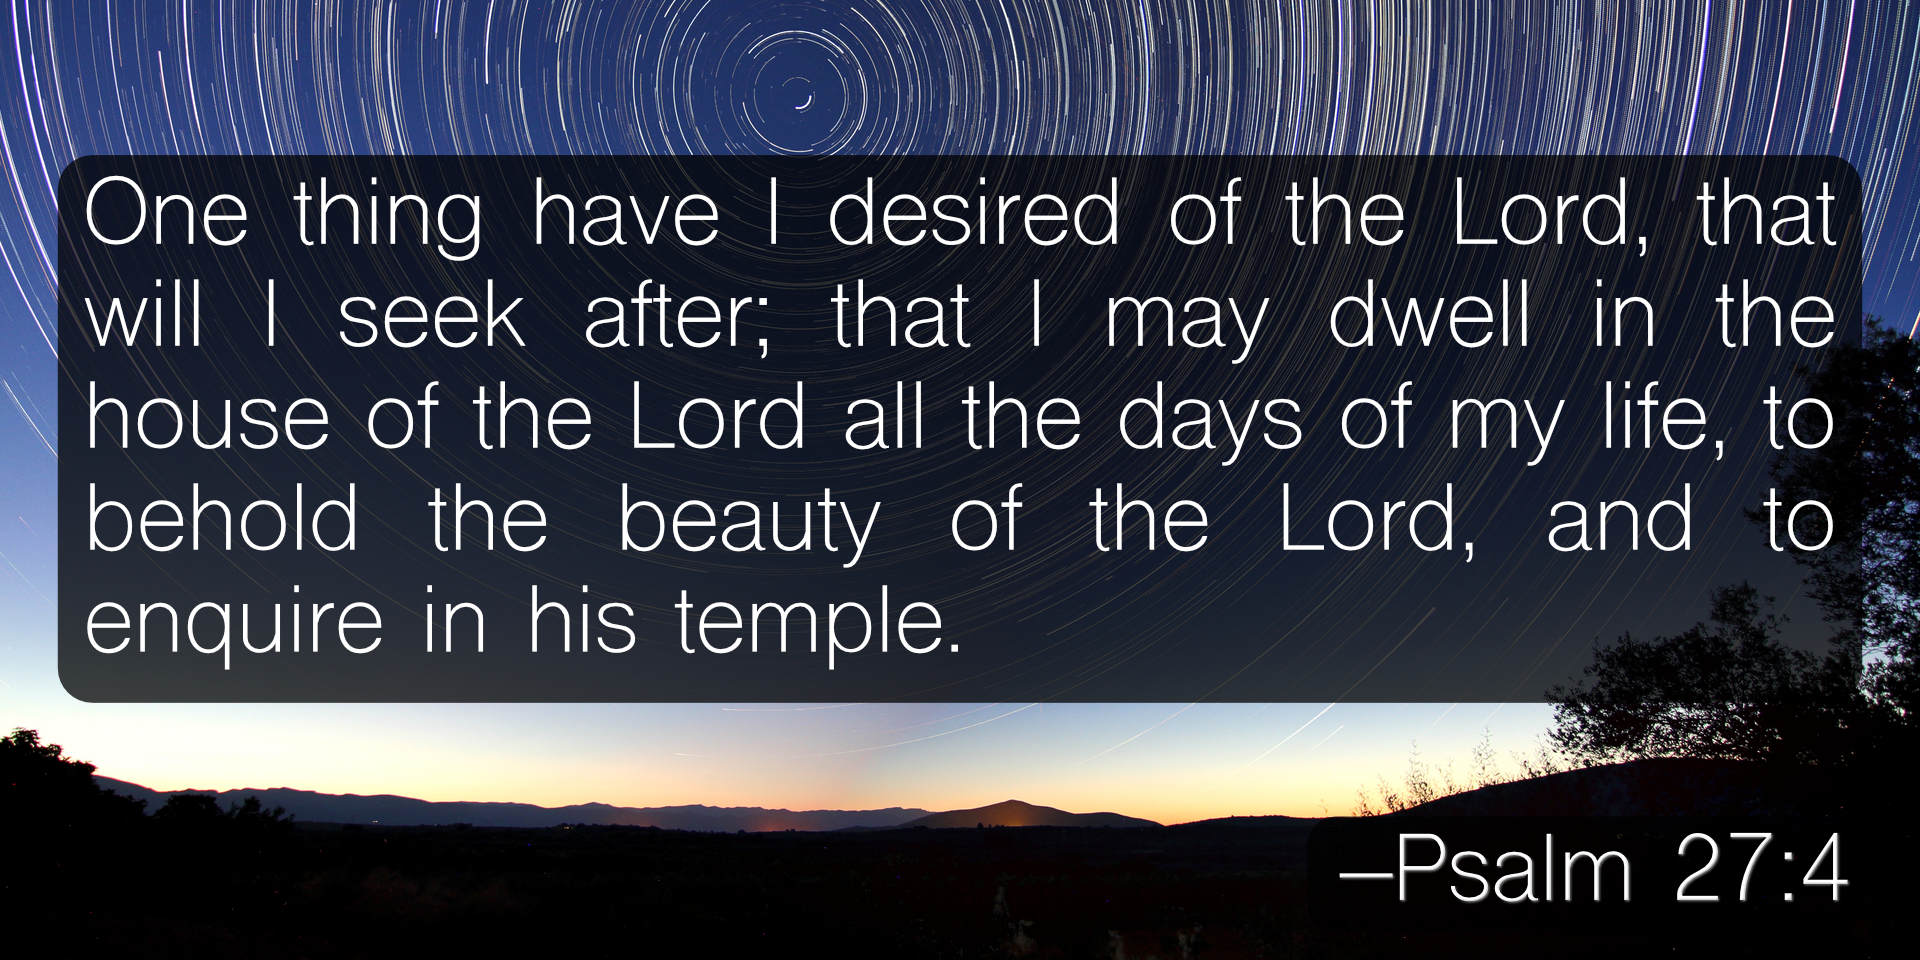 One thing have I desired of the Lord, that will I seek after; that I may dwell in the house of the Lord all the days of my life, to behold the beauty of the Lord, and to enquire in his temple. –Psalm 27:4